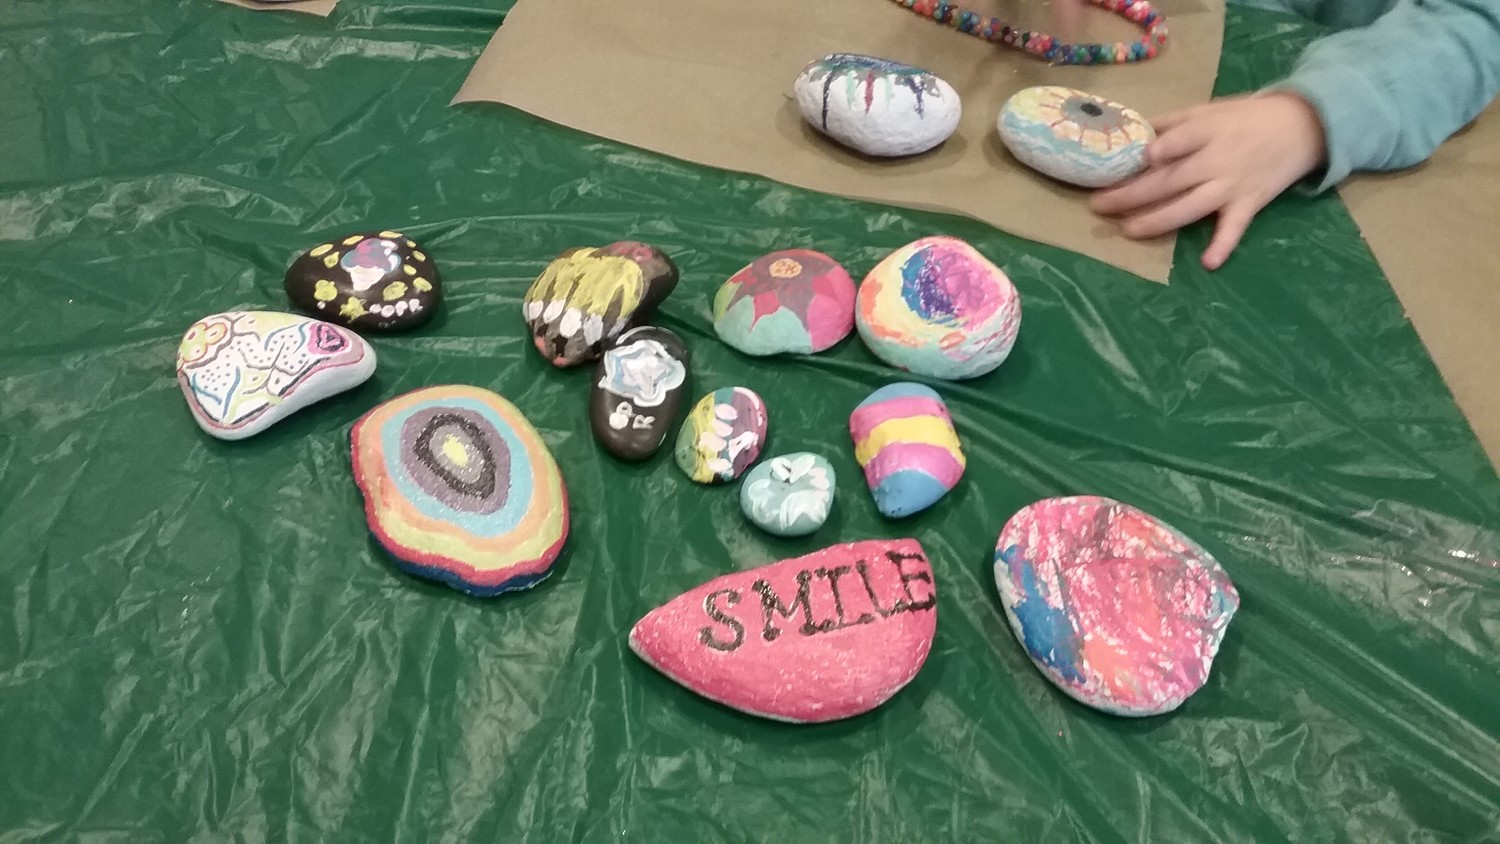 Colorfully painted rocks, designed and created at an Oceanside rock painting party. Elementary schoolers, middle schoolers, and adults all pitched in to decorate the rocks.